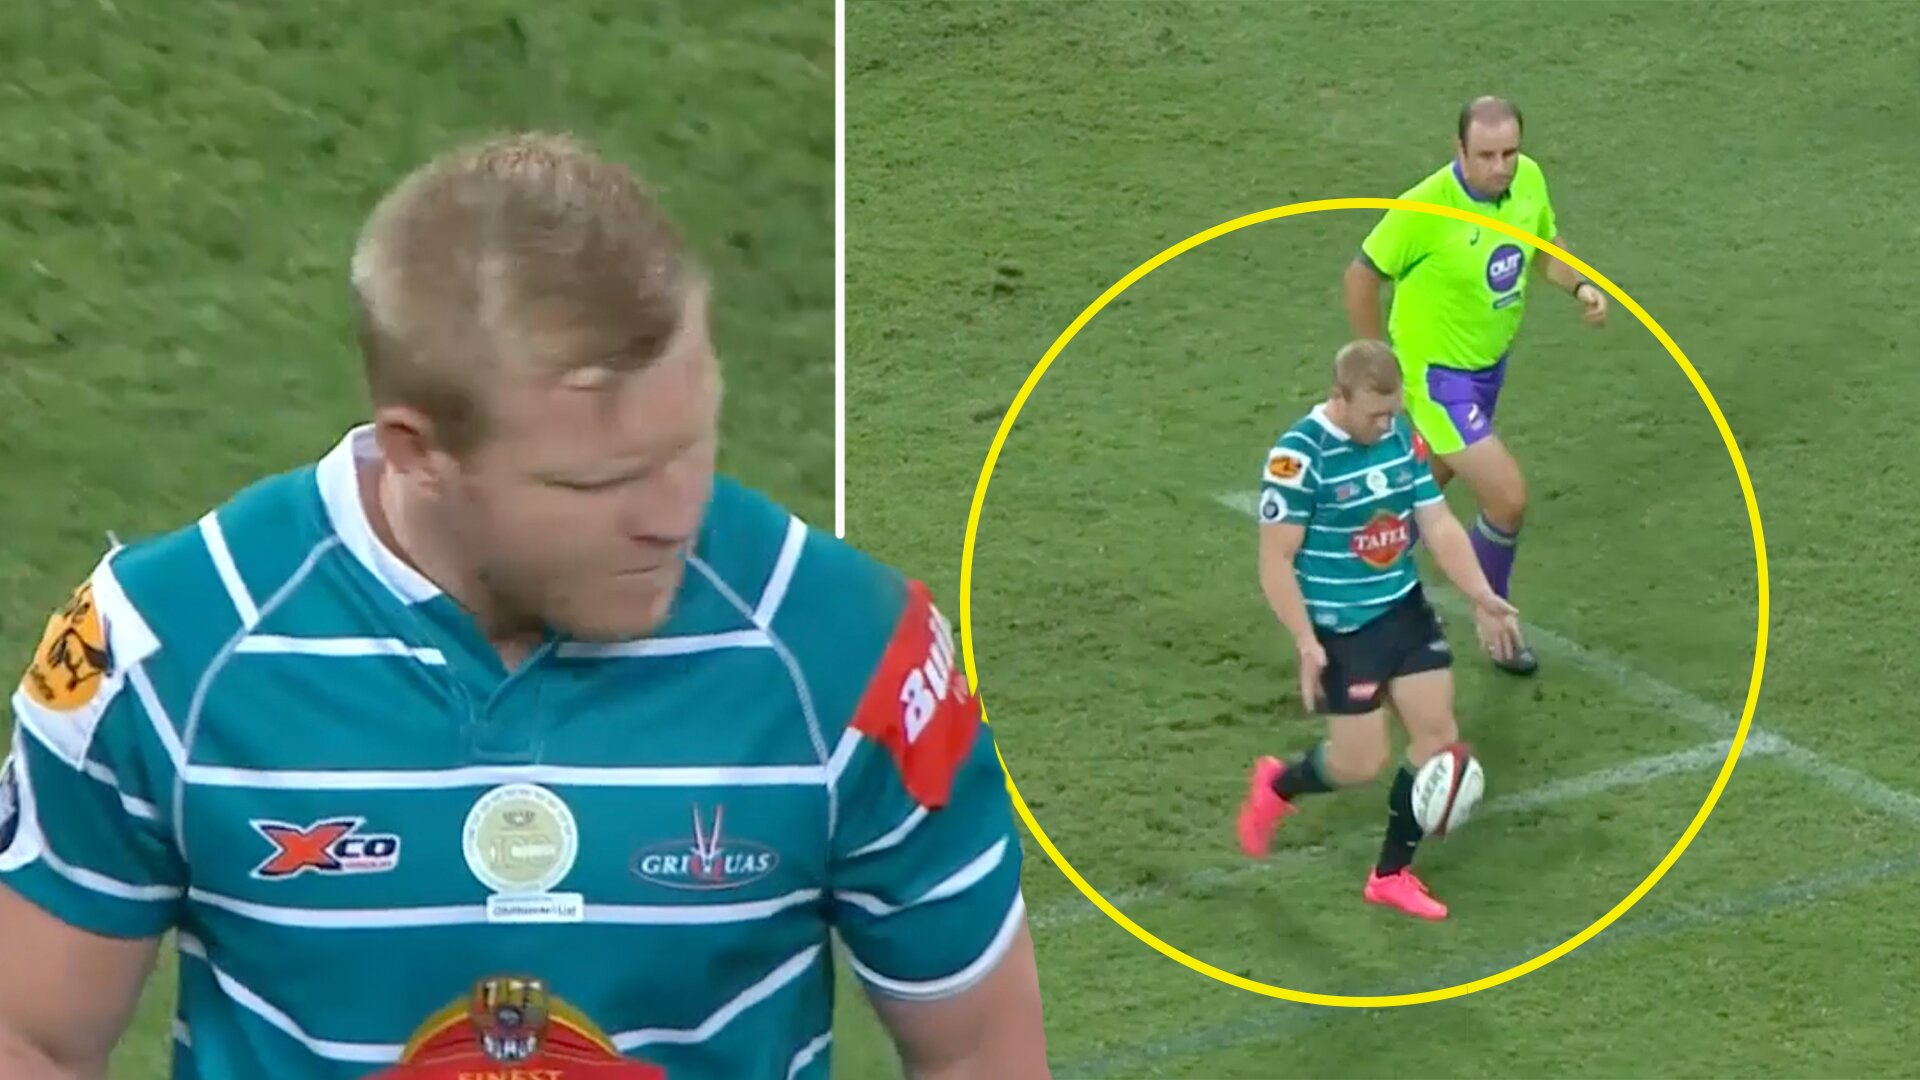 Yesterday's Currie Cup match throws up shocking contender for worst kick of all time